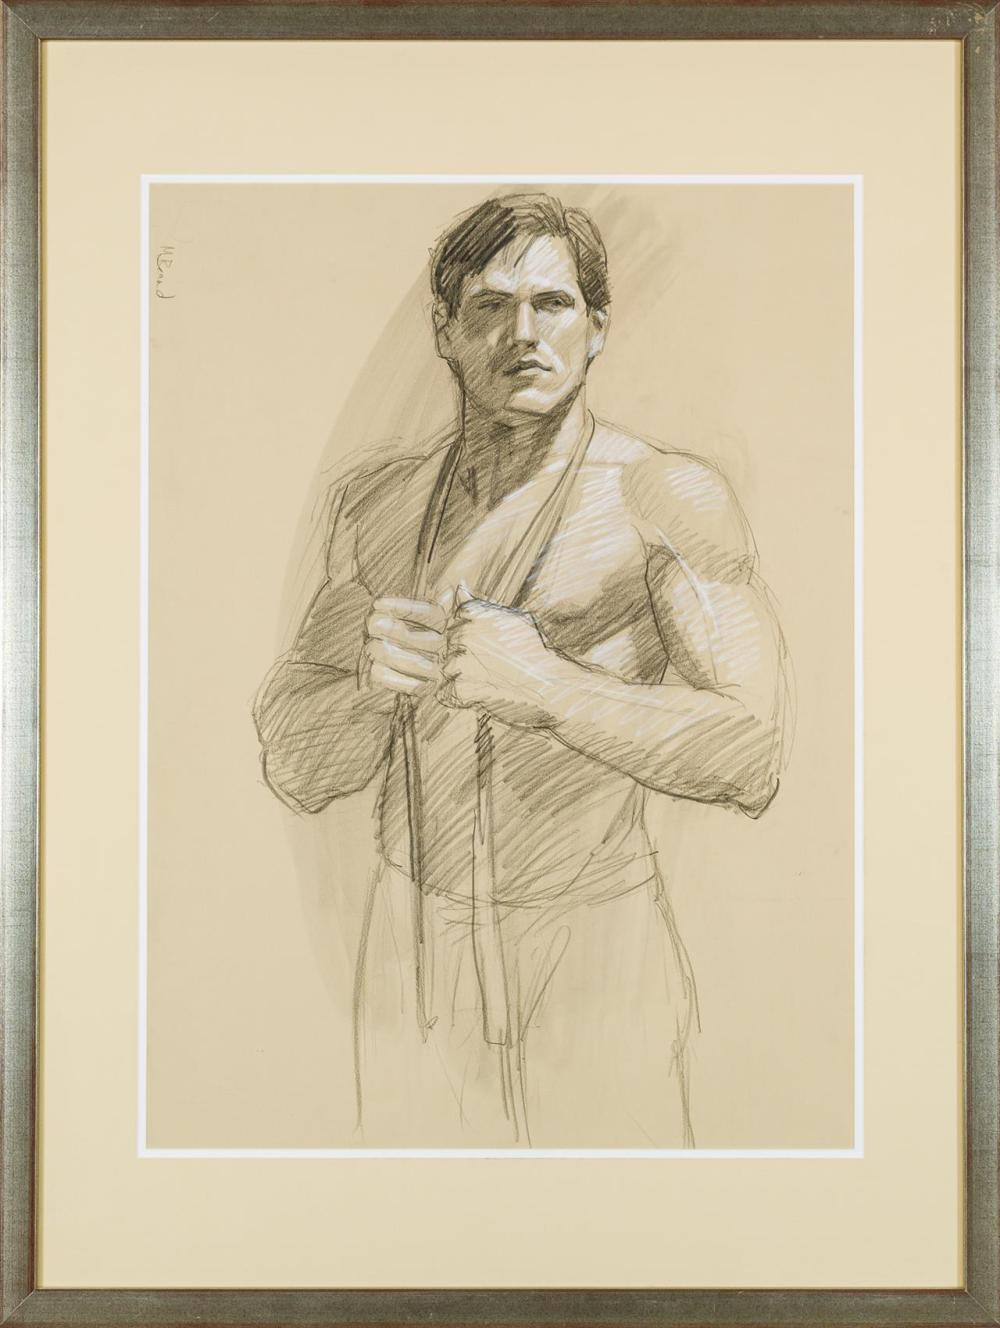 """MARK BEARD, American (b. 1956), Untitled, 2003, charcoal and crayon on paper, signed lower right """"Beard 03"""", 29 1/4 x 21 1/4 inches..."""